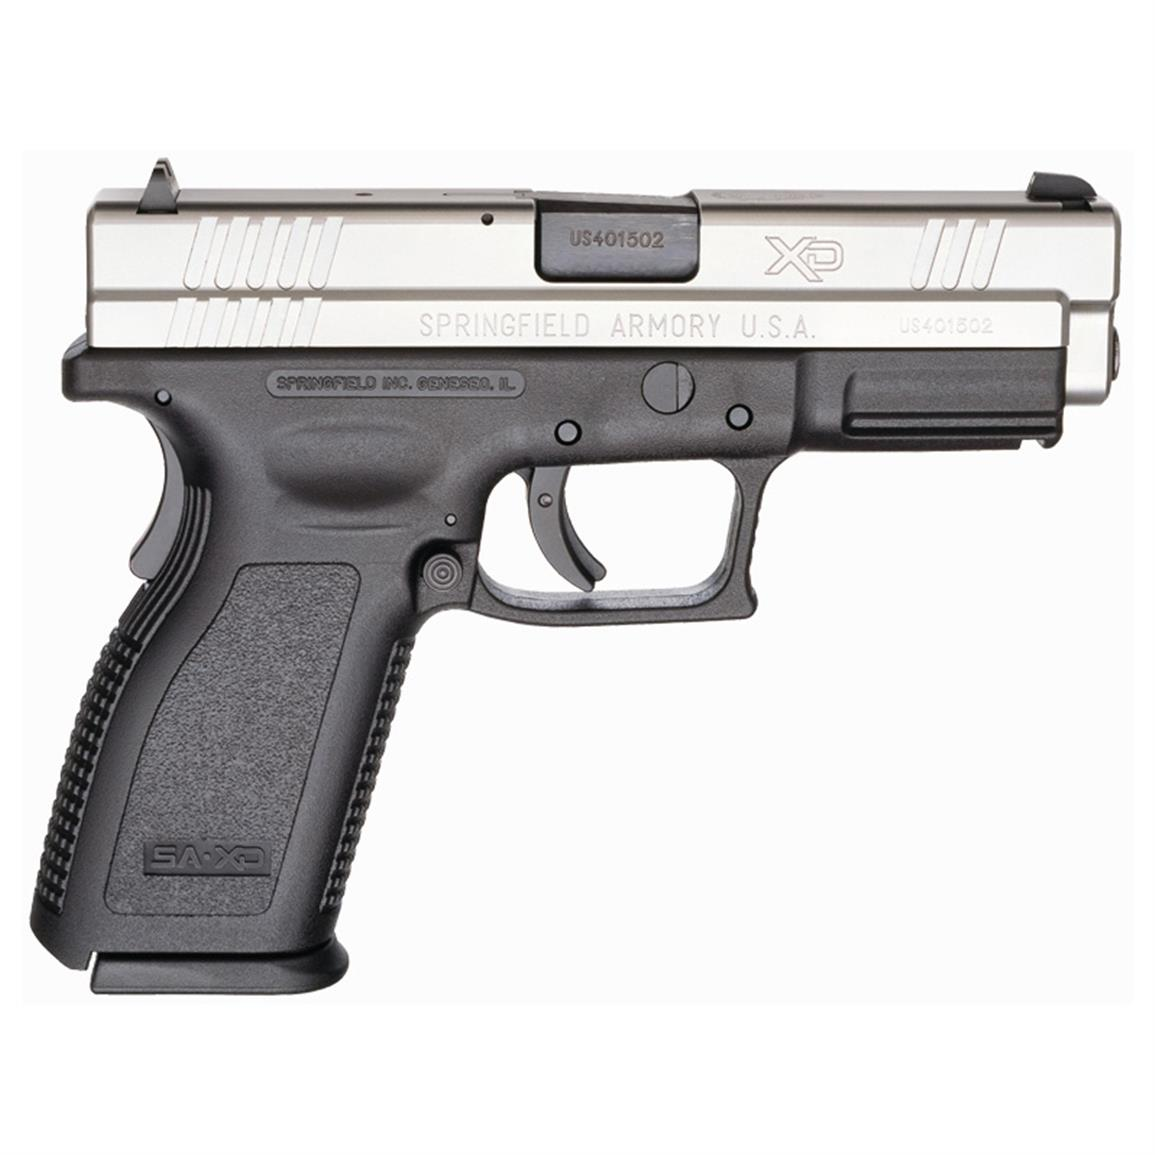 Springfield XD 4 inch Service, Semi-automatic, 9mm, XD9301HCSP06, 706397865849